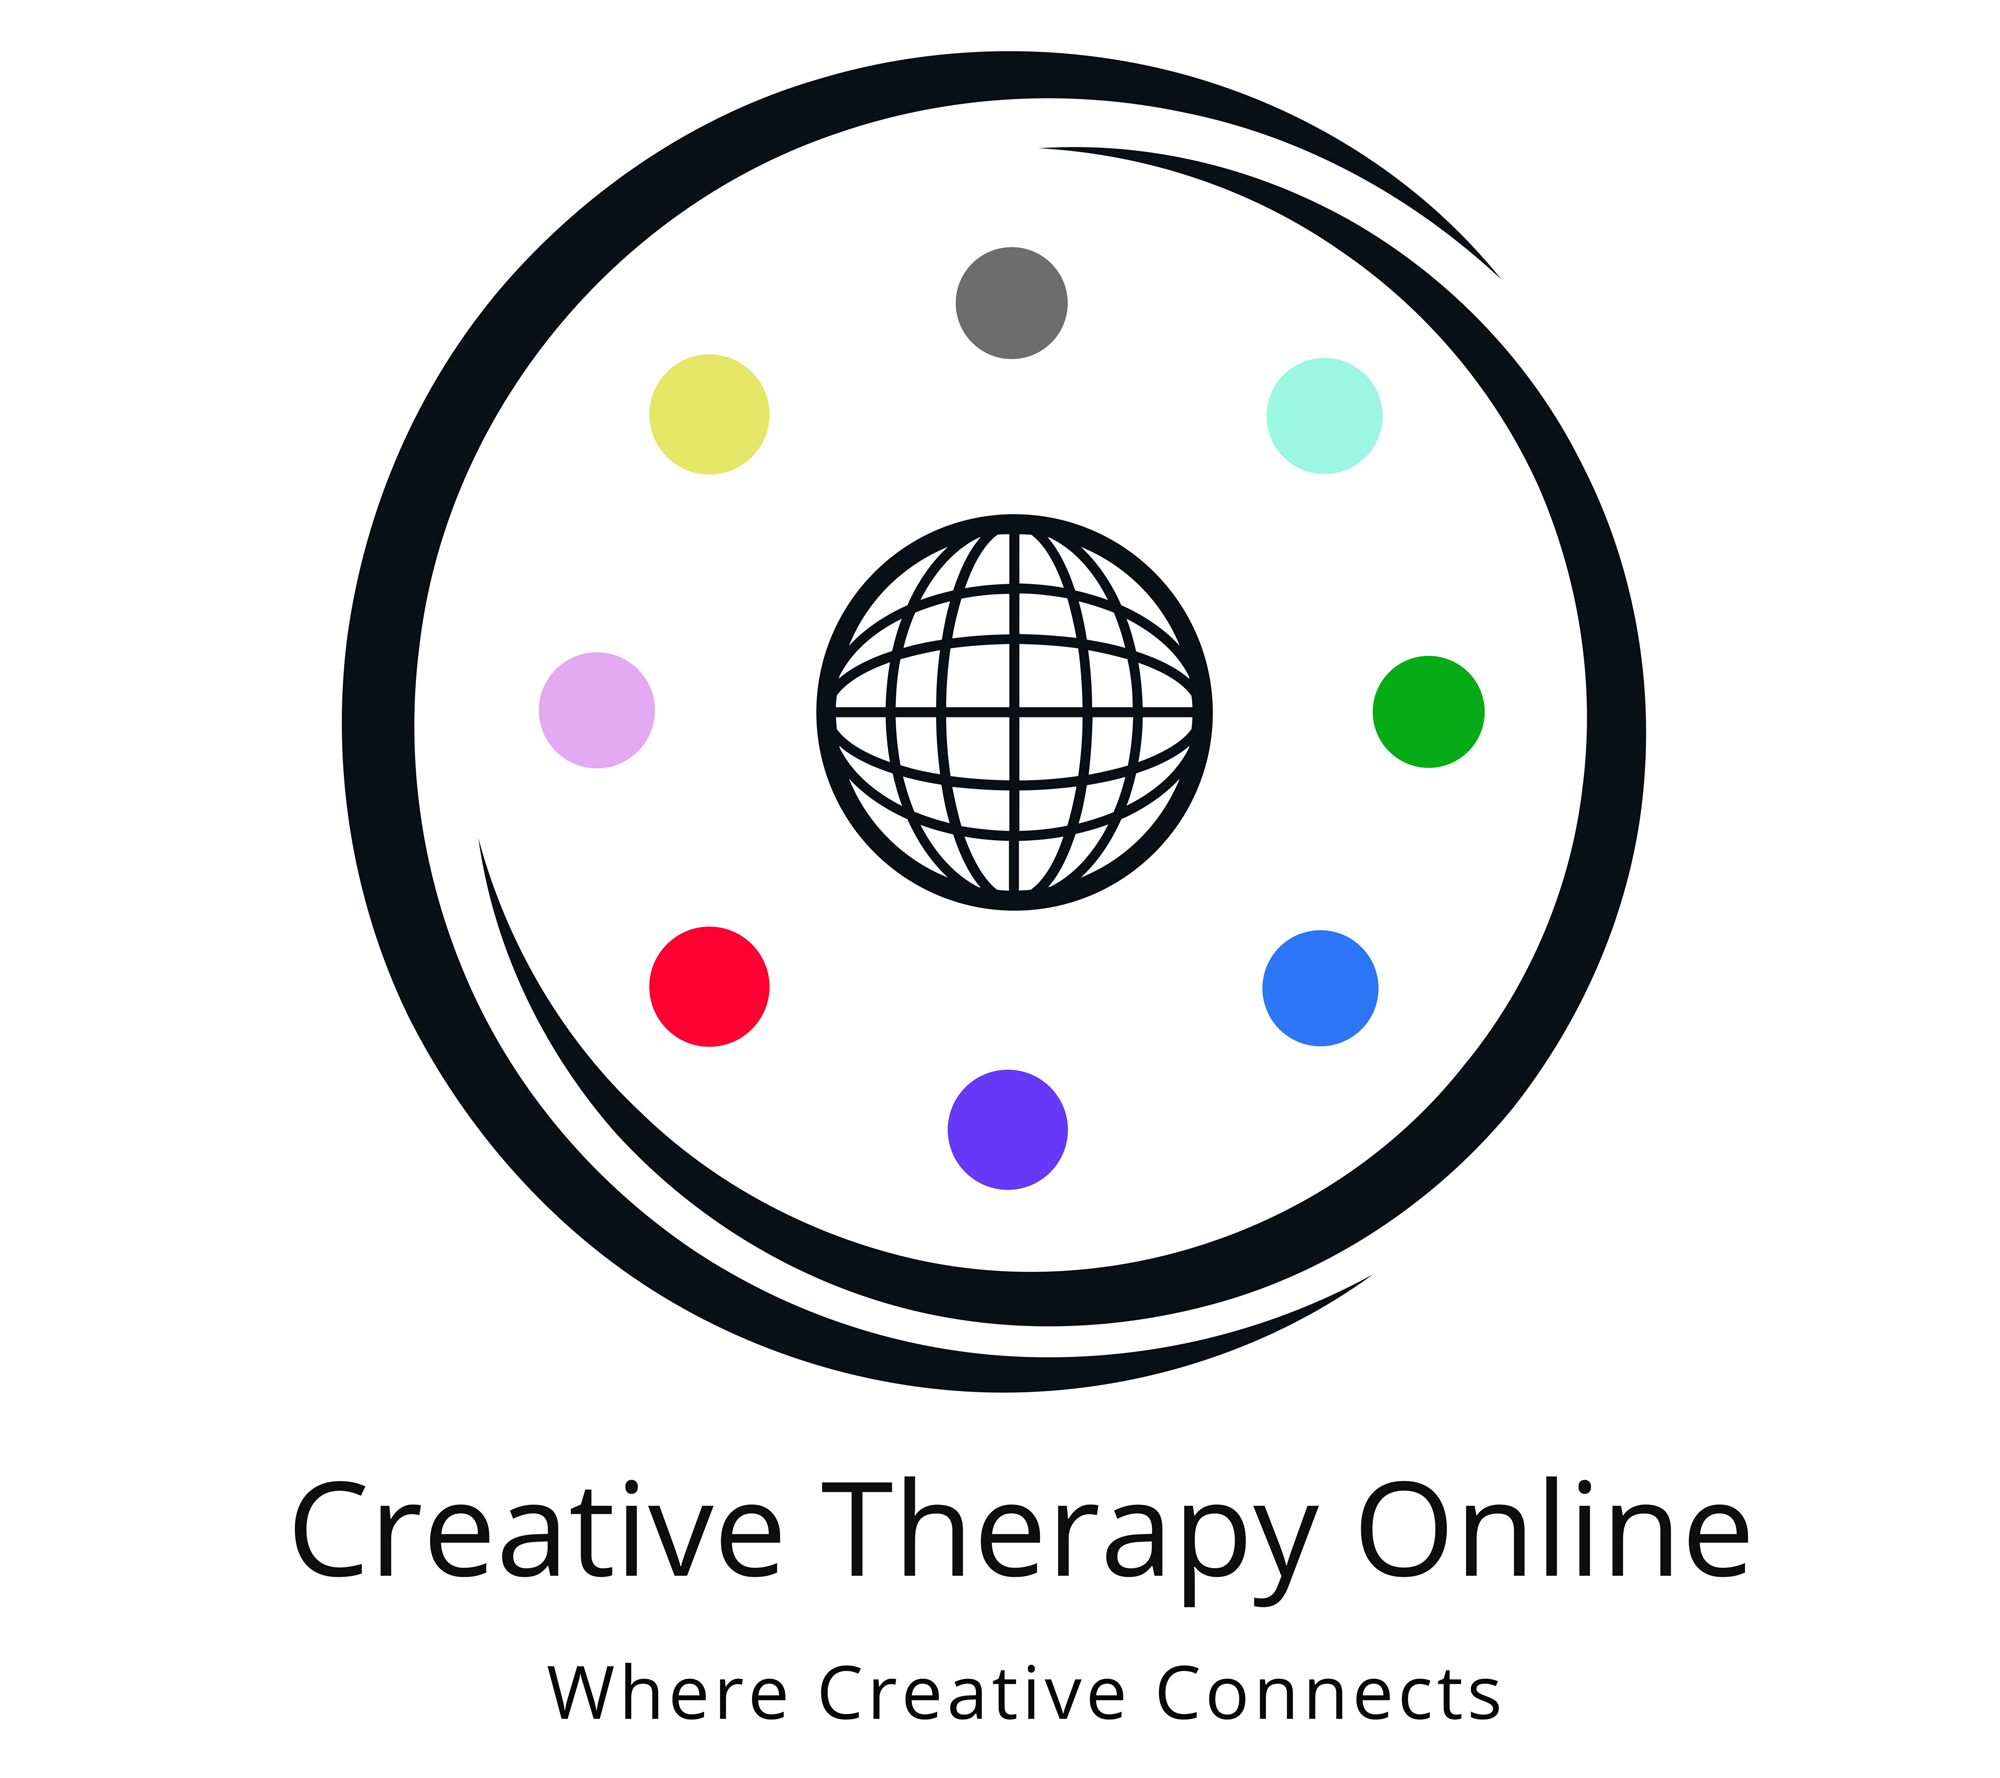 Creative Therapy Online